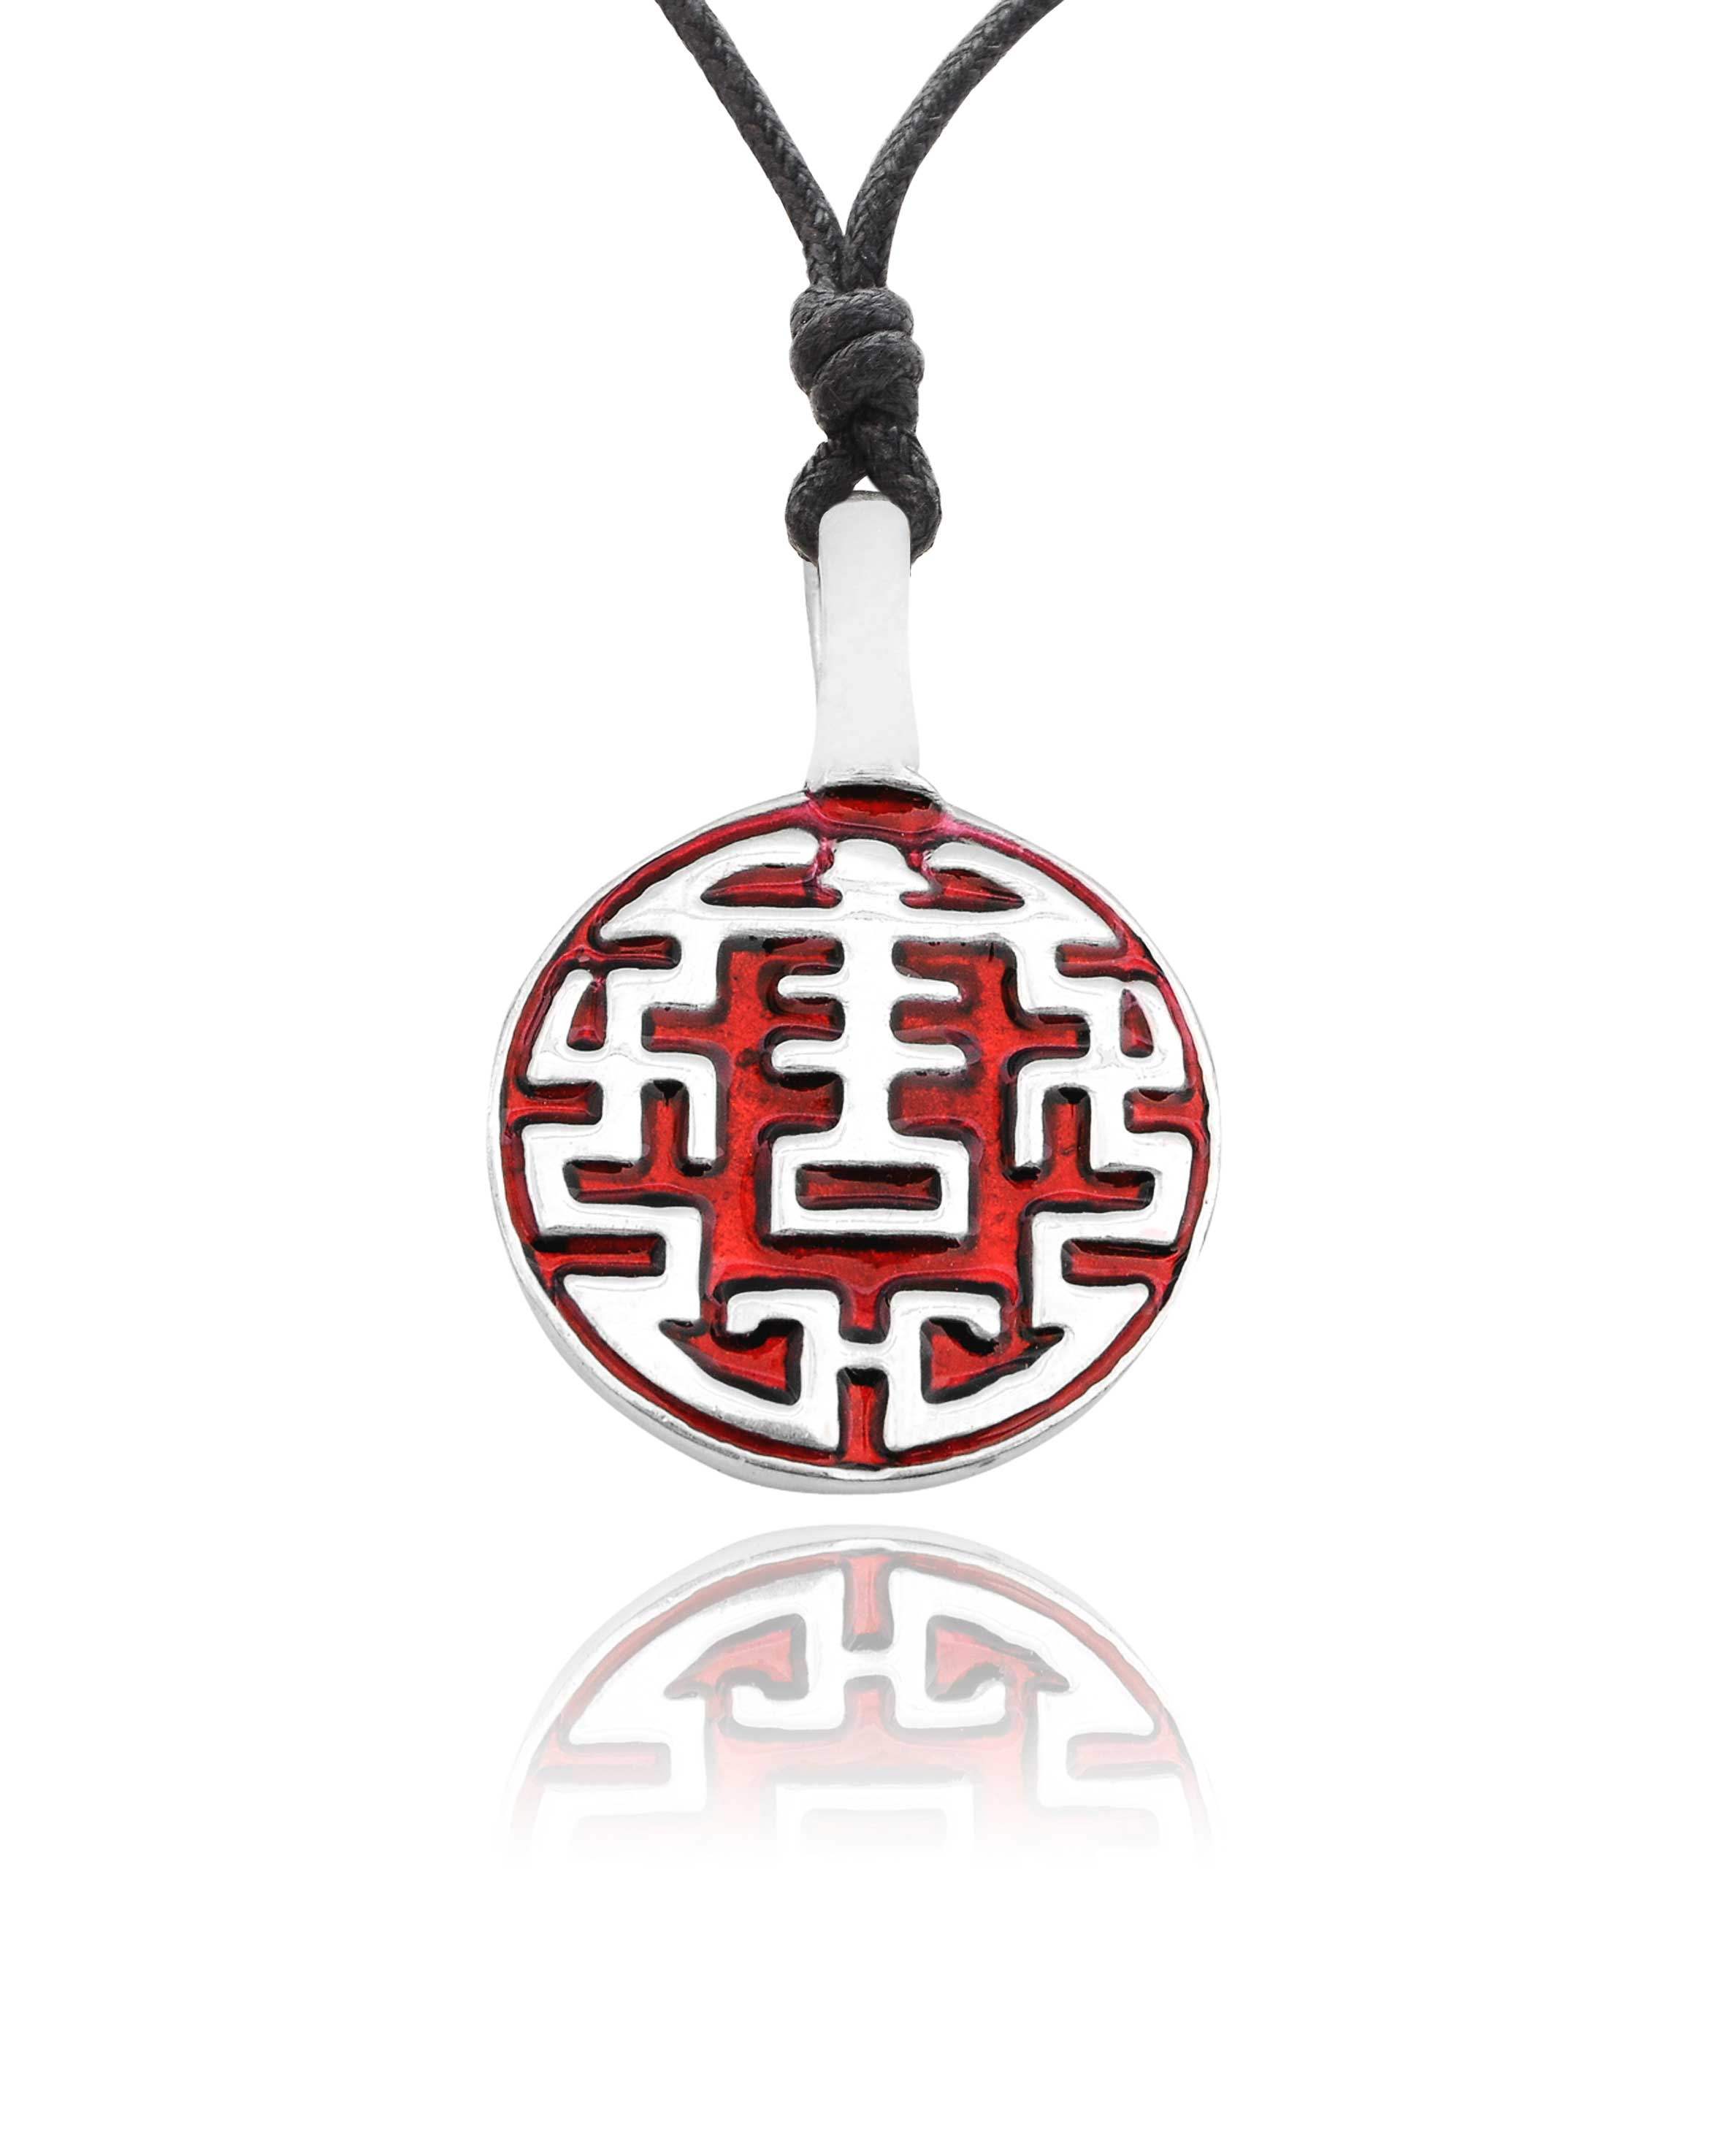 Chinese lucky design silver pewter charm necklace pendant jewelry ebay chinese lucky design silver pewter charm necklace pendant aloadofball Choice Image